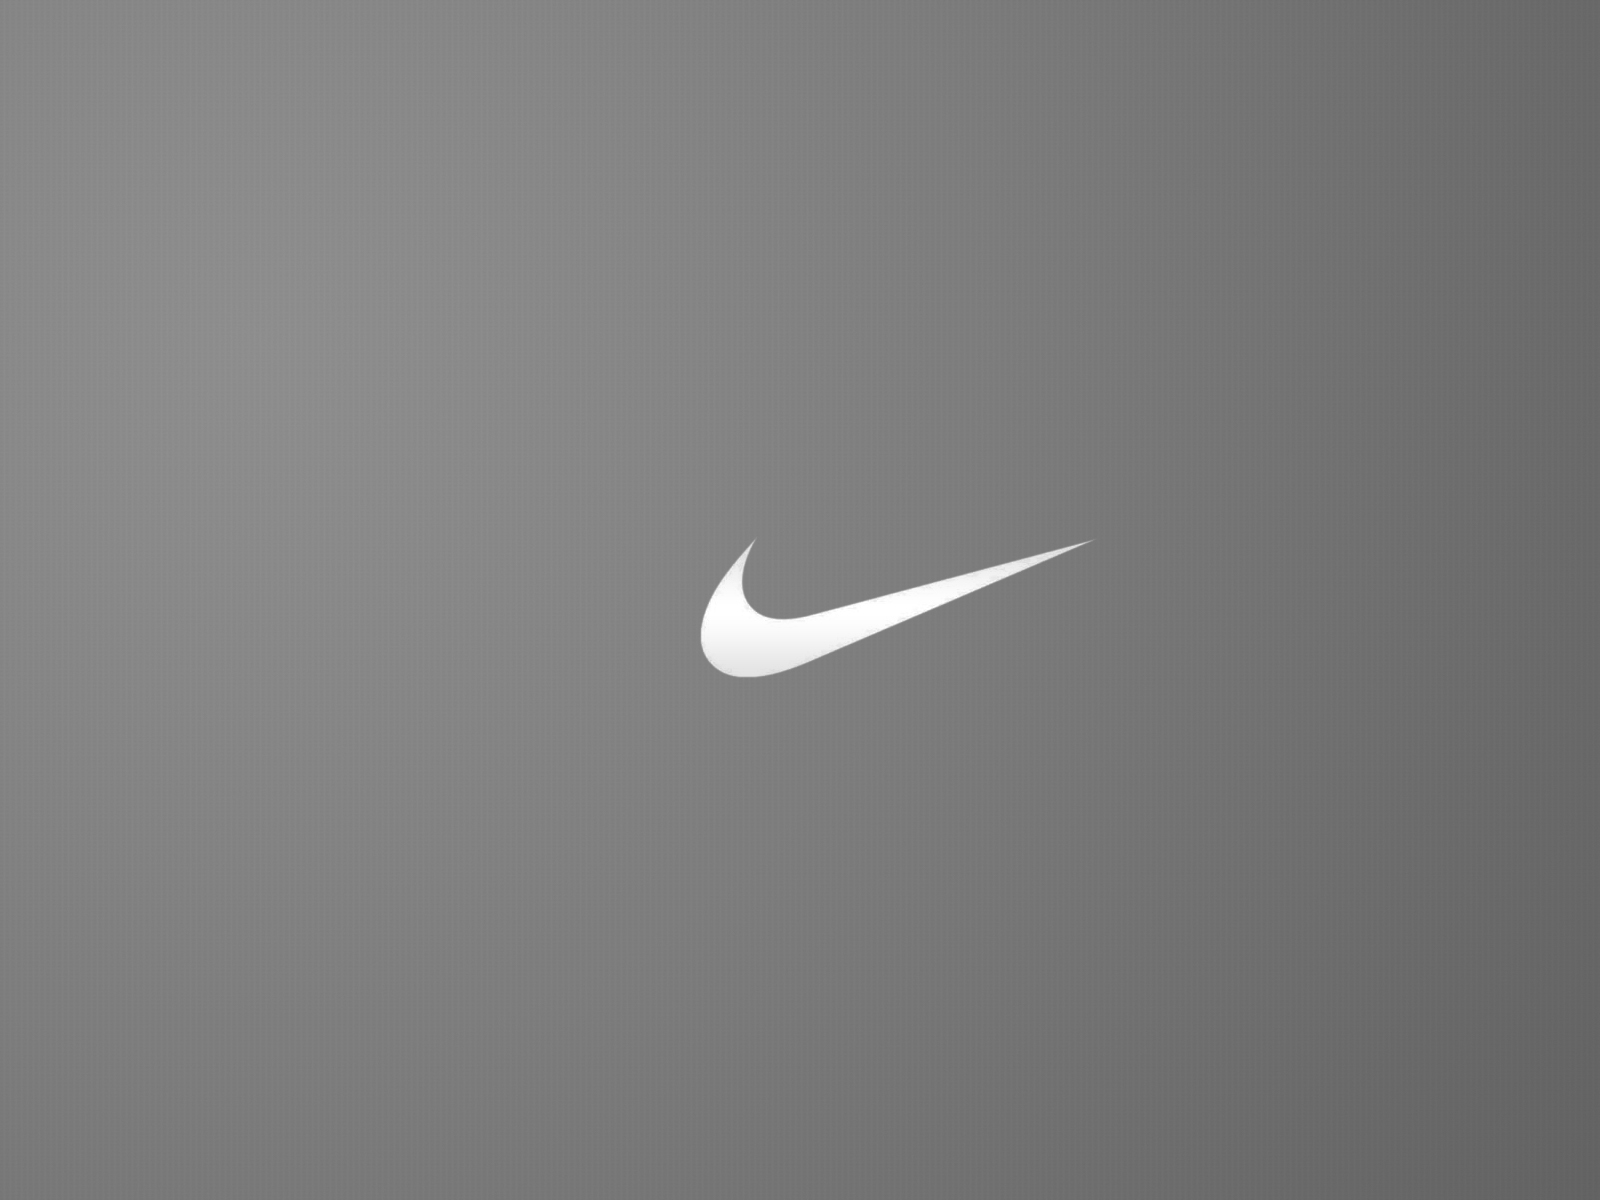 Nike wallpaper hd 8155 1600x1200px nike wallpaper hd 8155 voltagebd Gallery